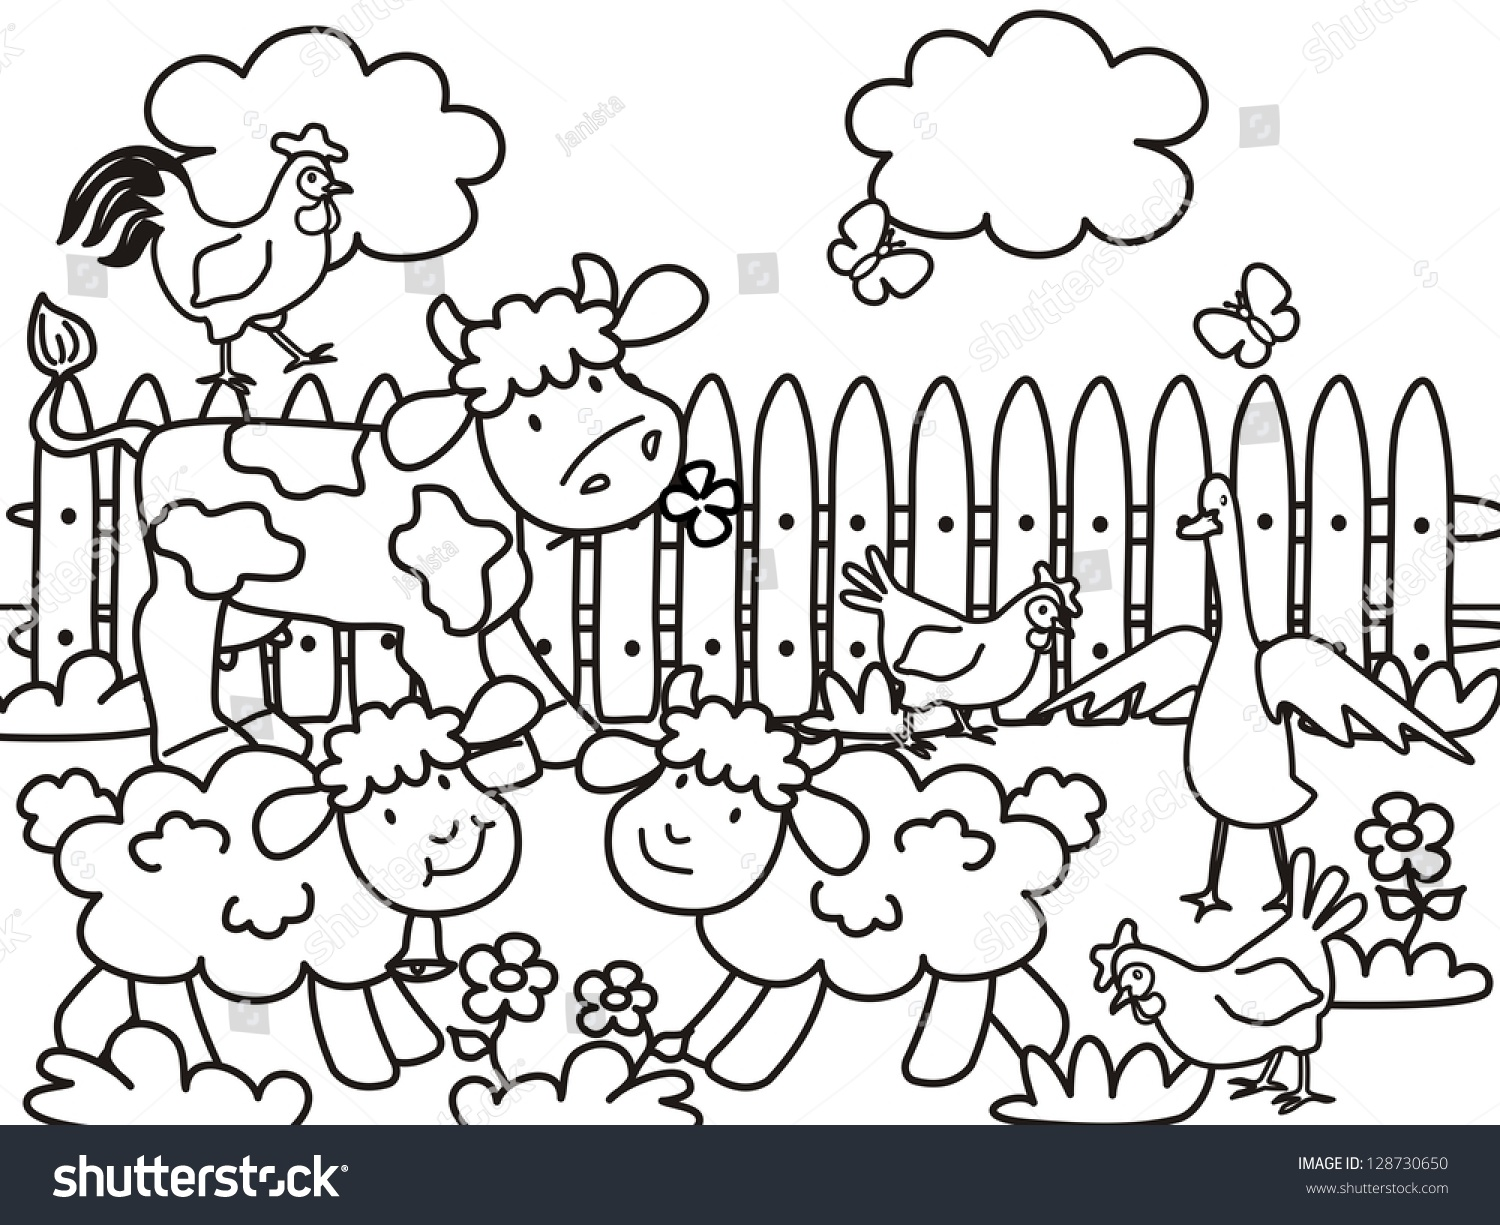 Farm Coloring Page Vector Icon Stock Vector (Royalty Free) 128730650 ...